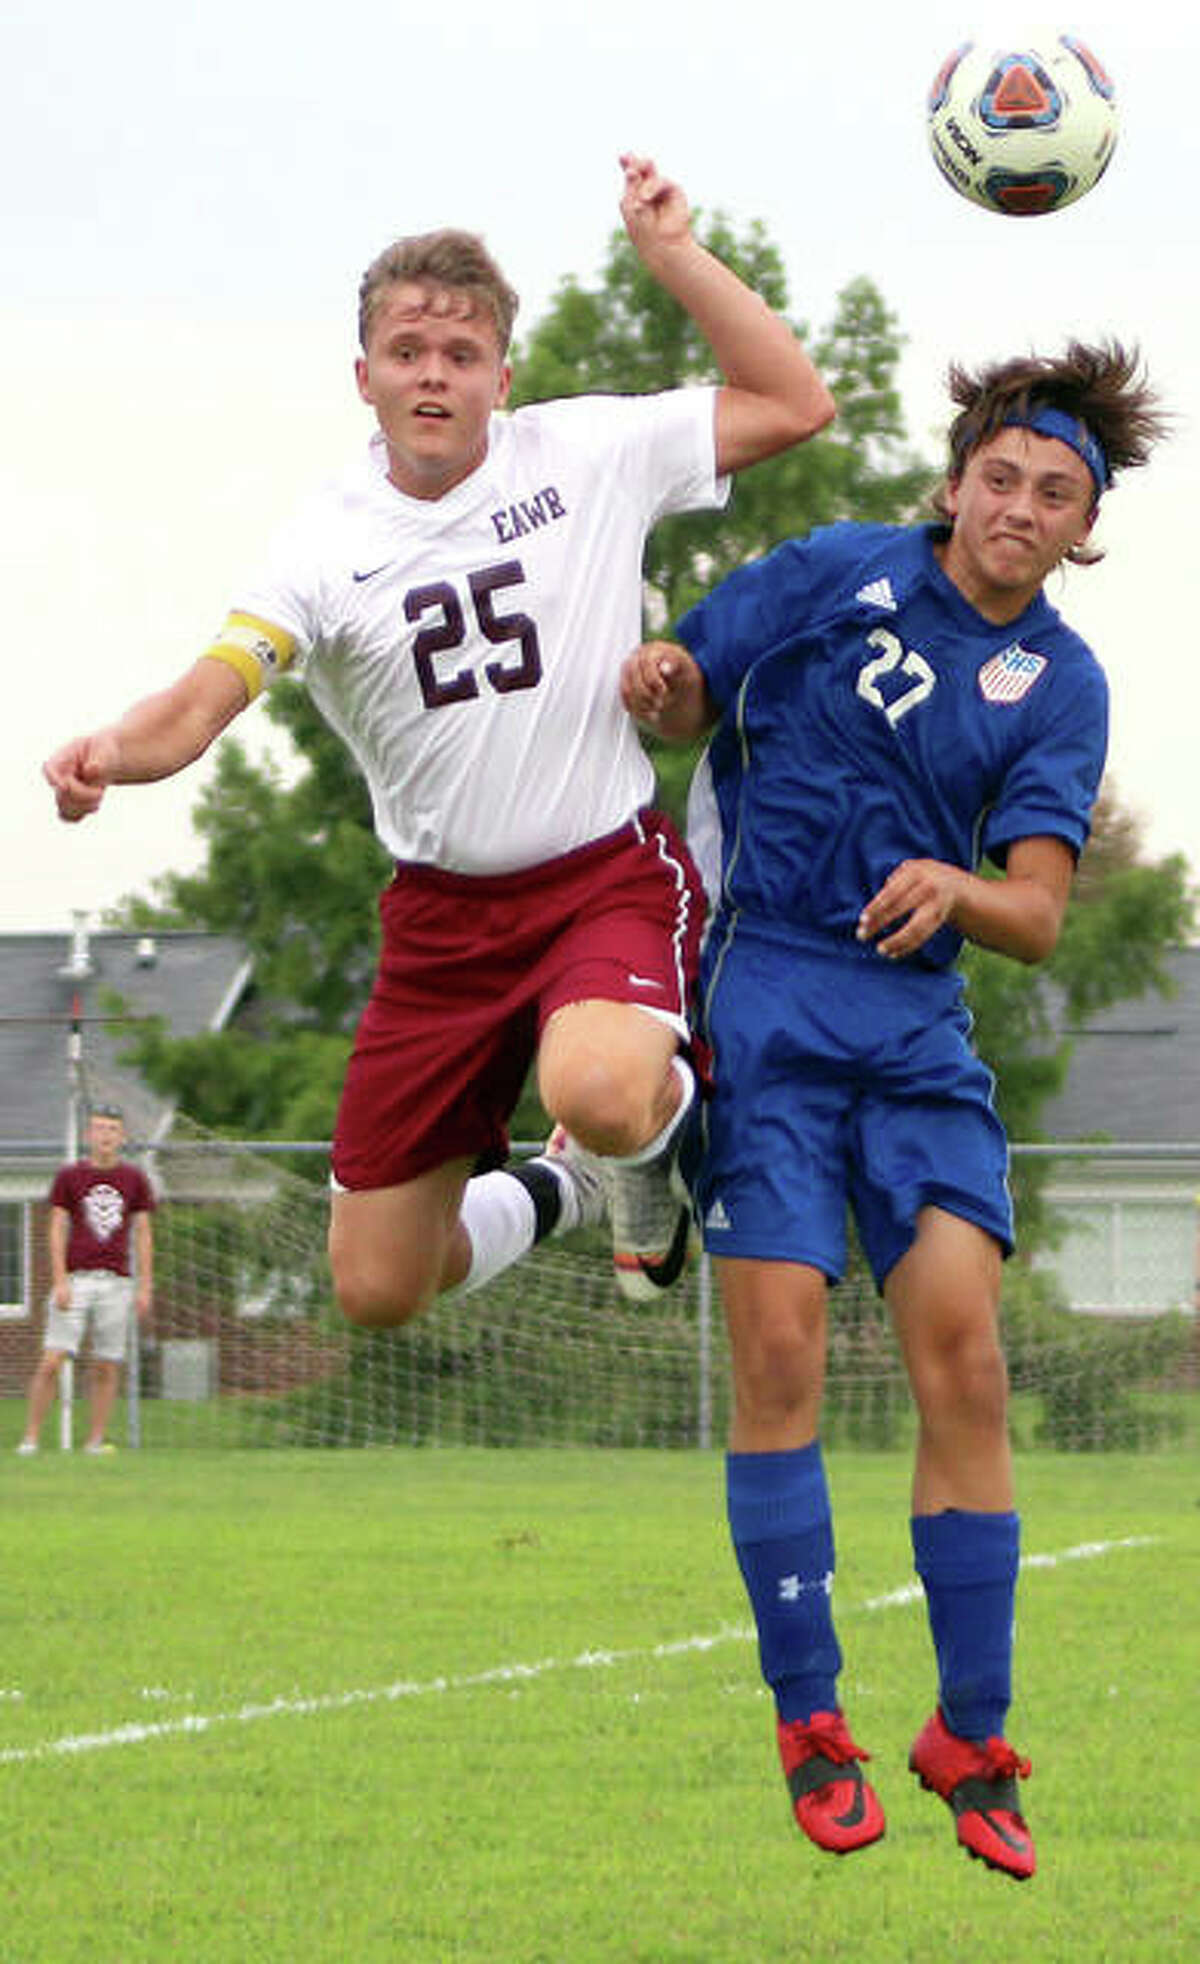 Christian Johnson of EA-WR (25) and Carlinville's Zaiden Reese go high in a battle to head the ball Monday in the season opener at Loveless Park in Carlinville. Johnson had four assists in EA-WR's 7-2 victory.